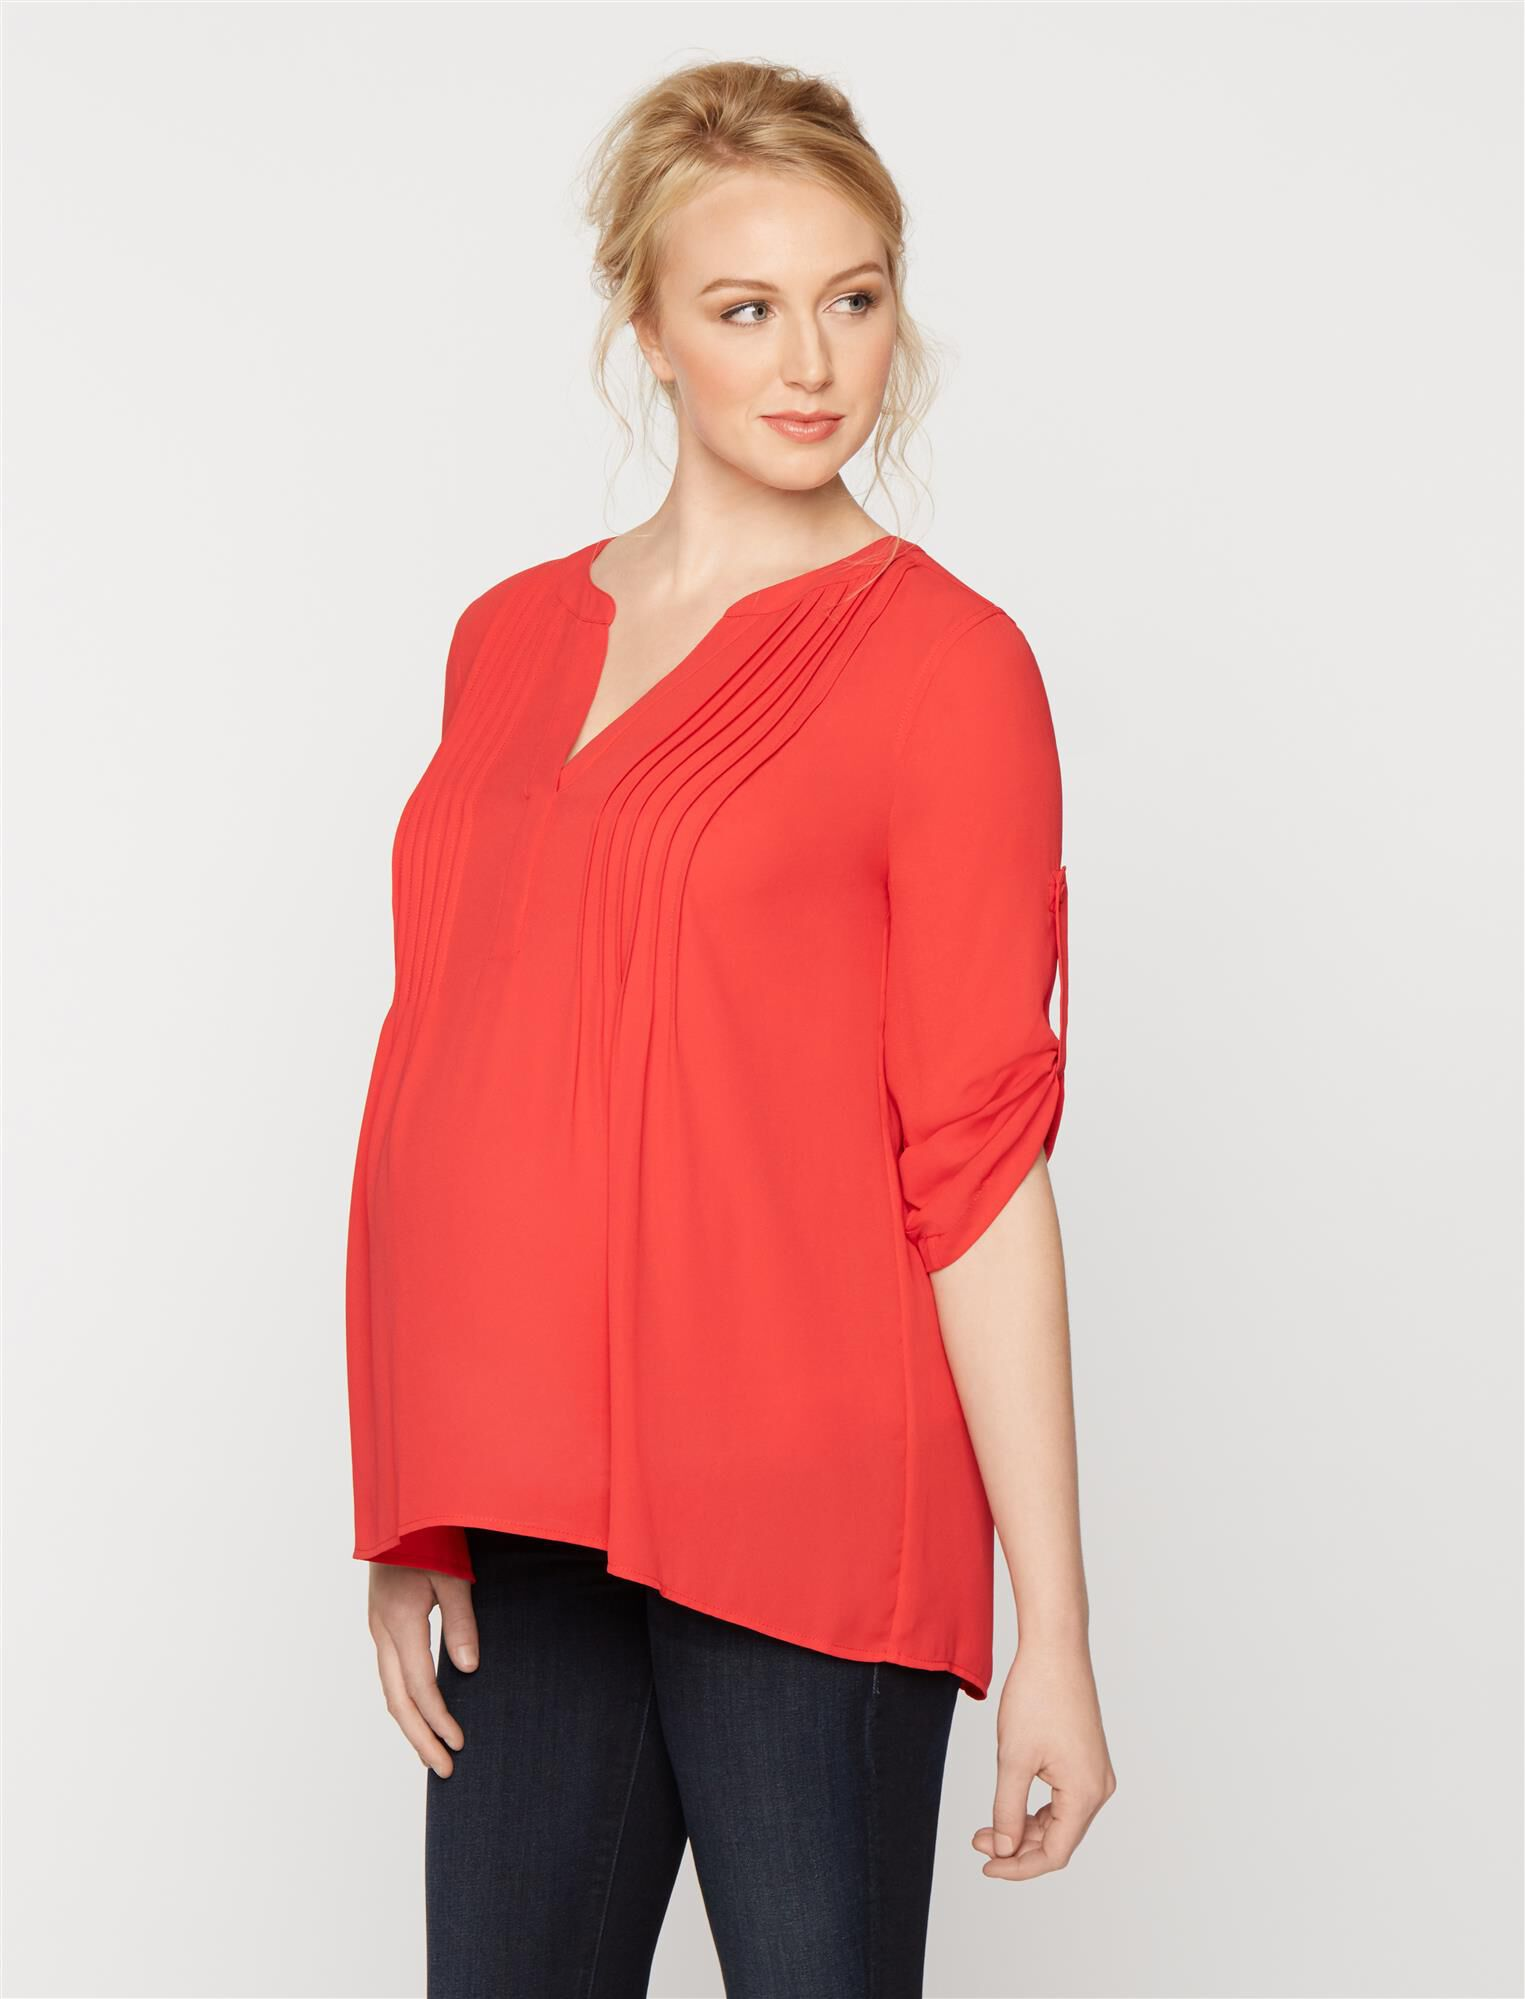 Bcbg Max Azria Pleated Maternity Blouse